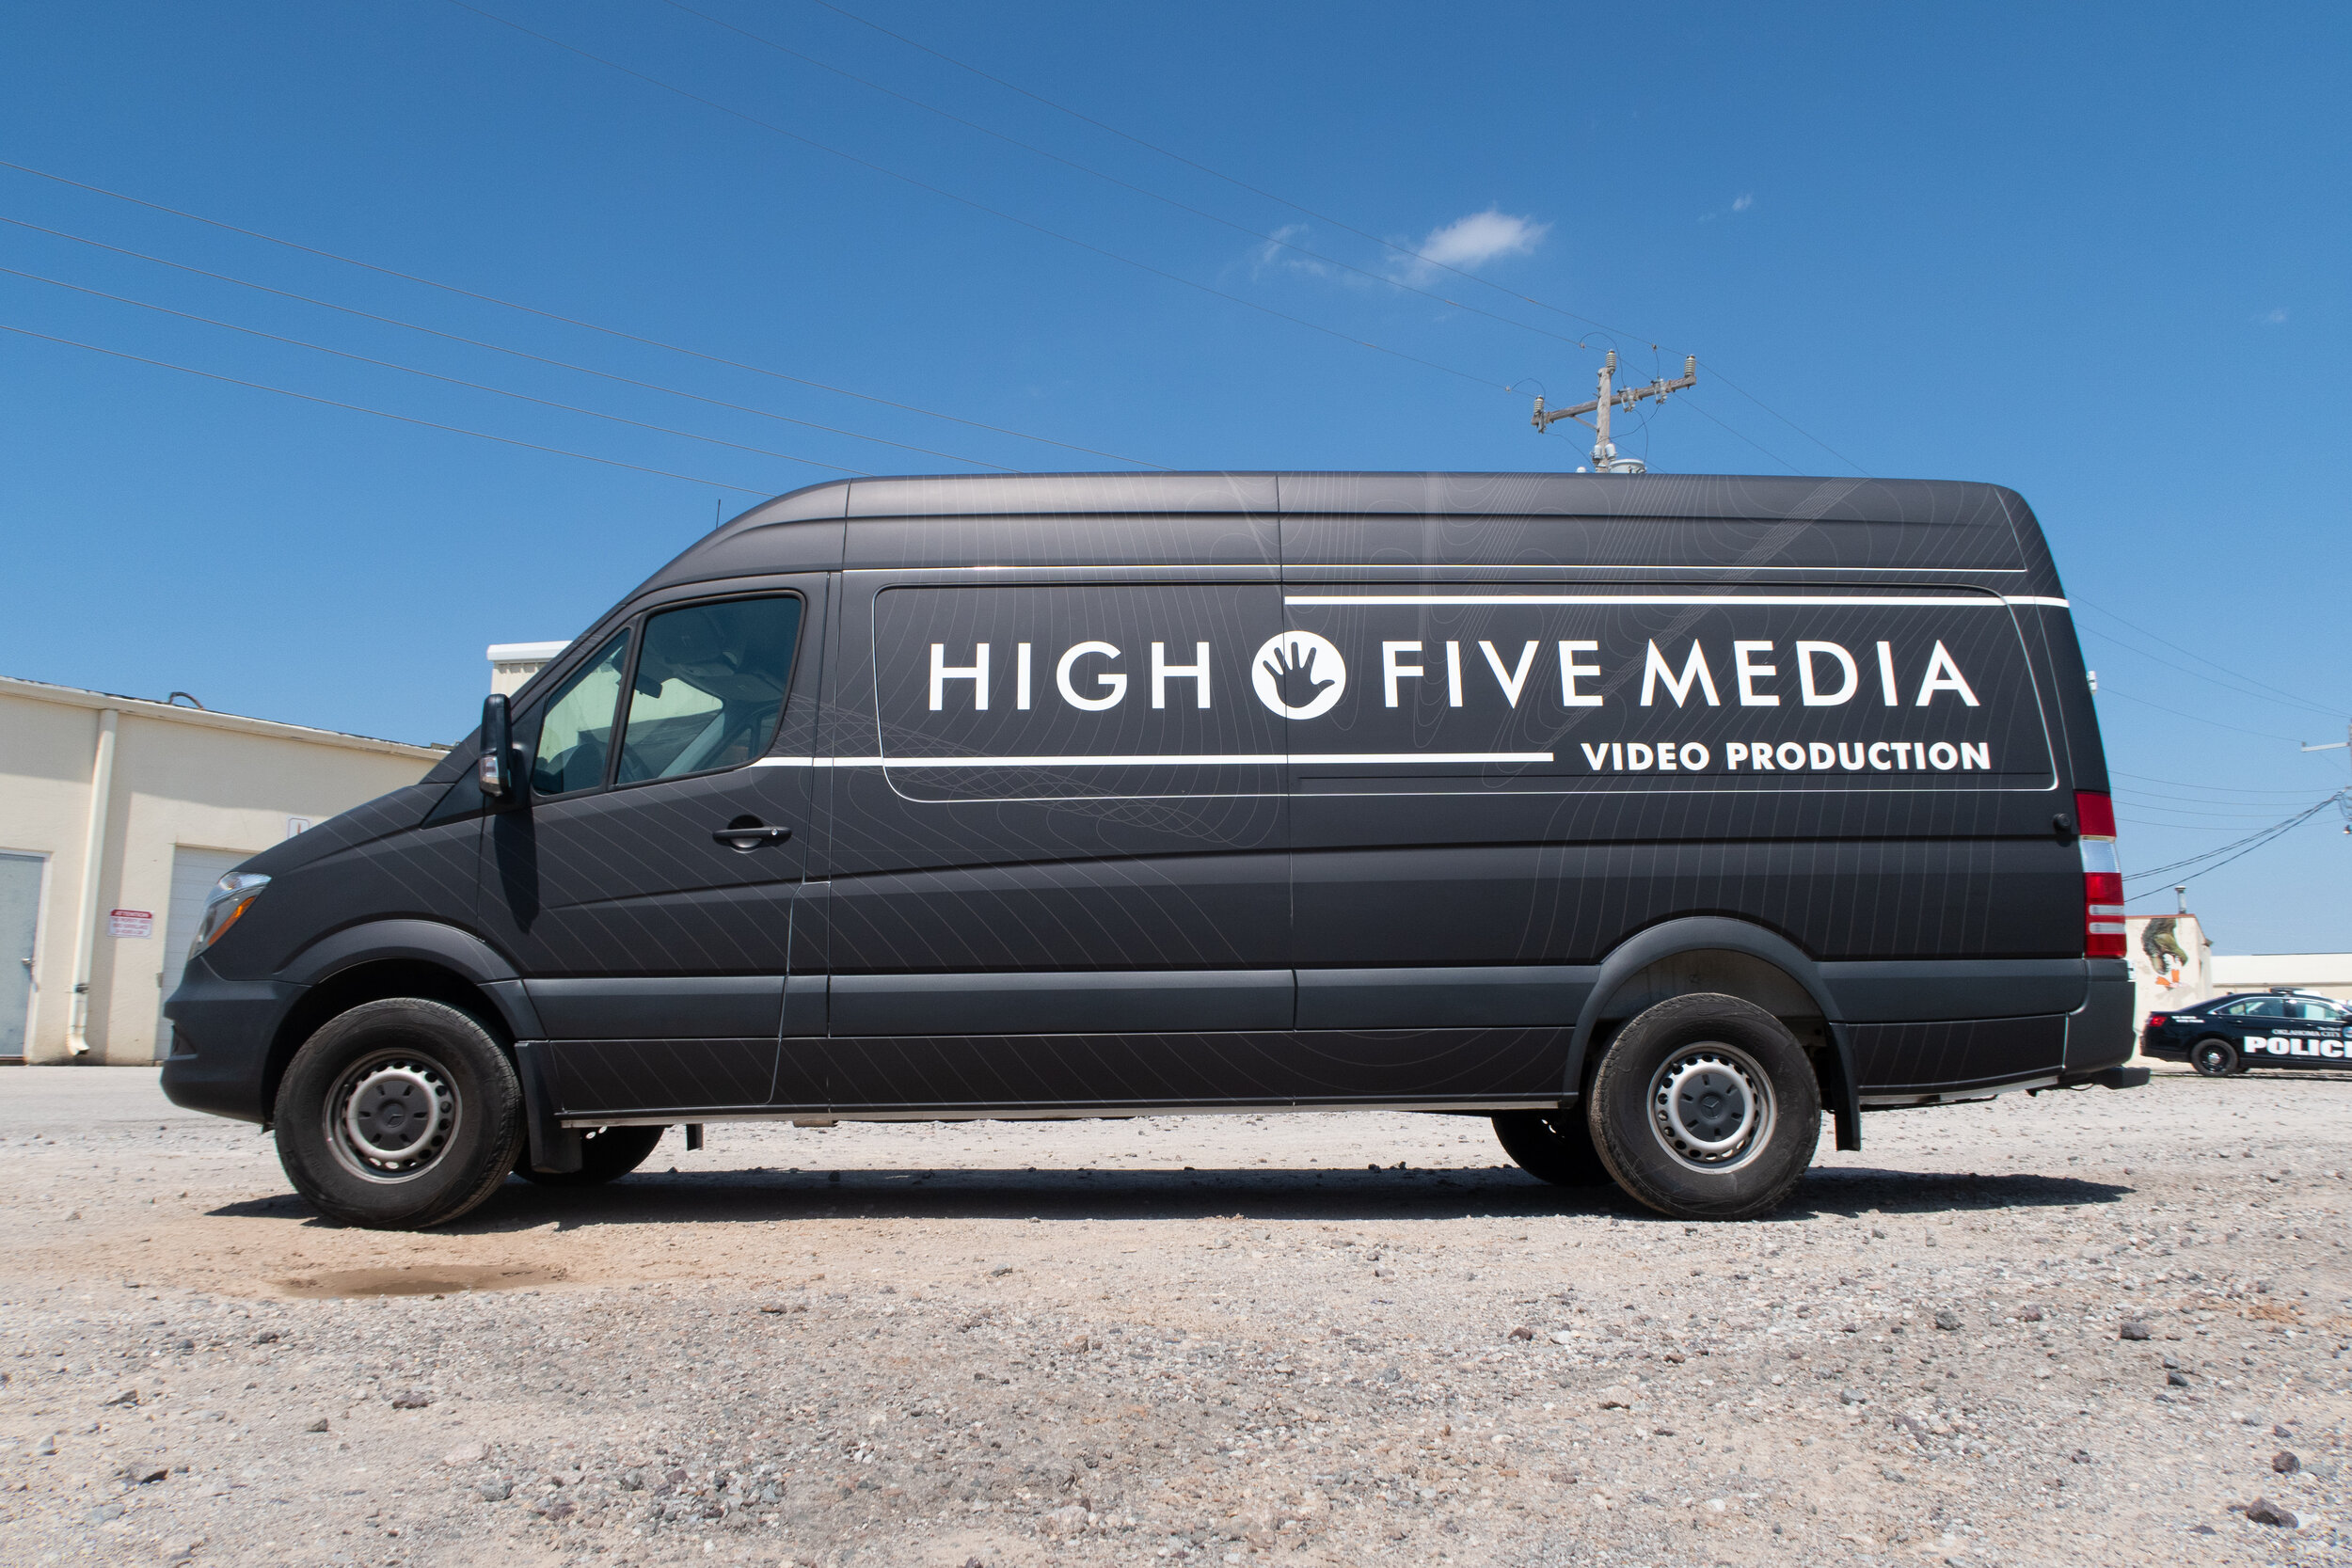 High Five Media video production commercial vehicle wrap.jpg